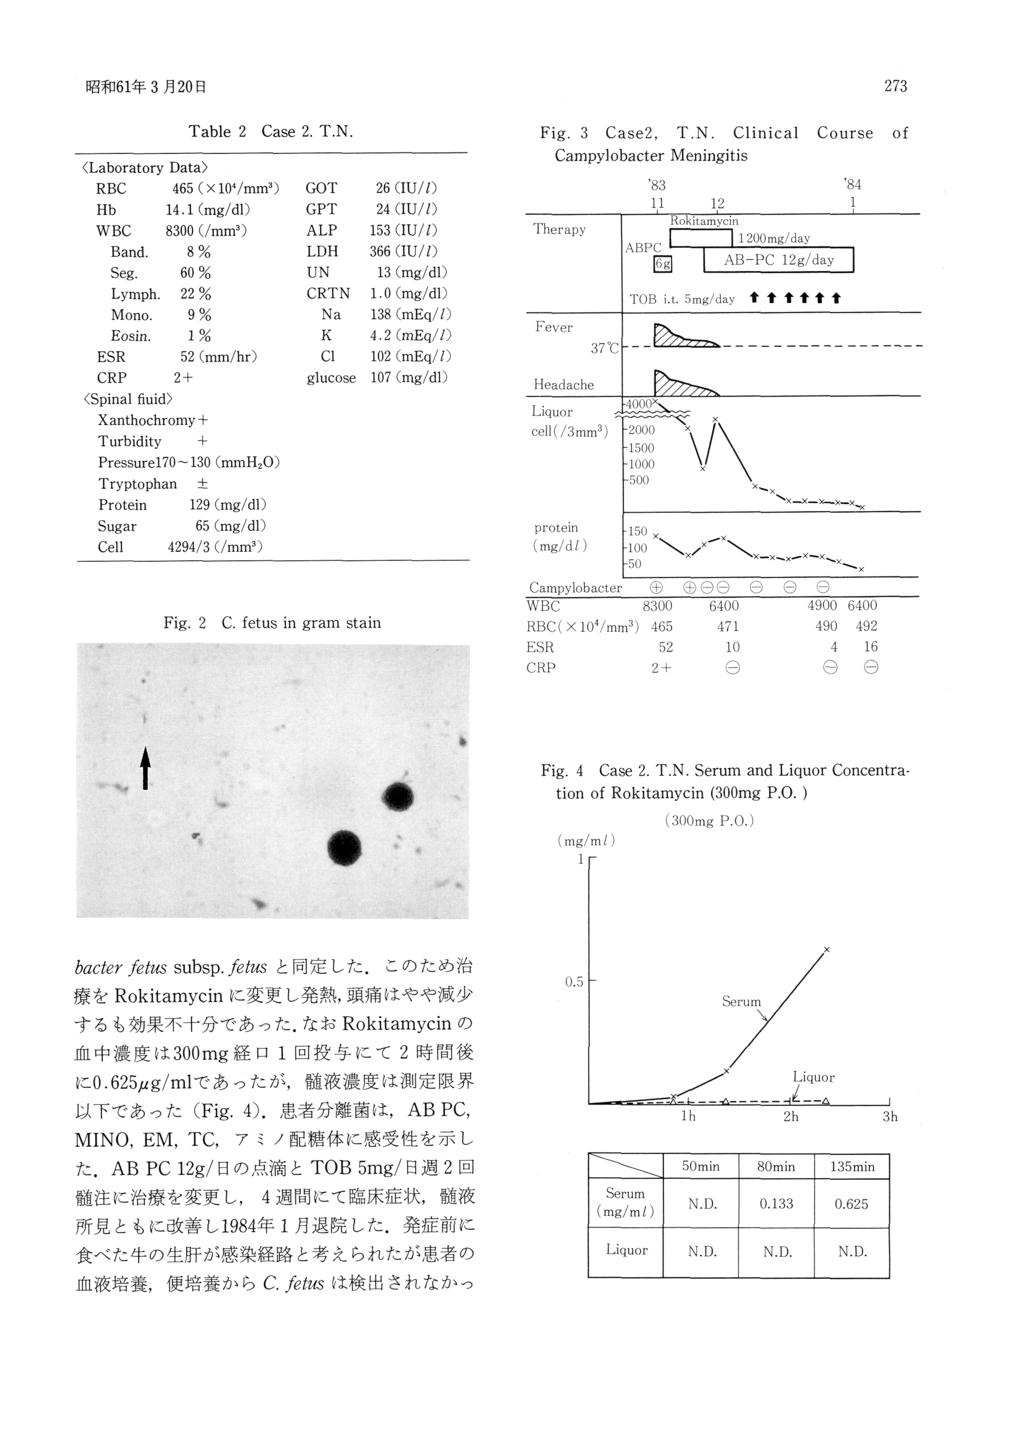 273 昭 和61年3月20日 Table 2 Case 2.T.N. Fig.3 Case2,T.N.Clinical Campylobacter Fig.2 C.fetus in gram Course of Meningitis stain Fig.4 Case 2.T.N.Serum and Liquor Concentration of Rokitamycin(300mg P.O.